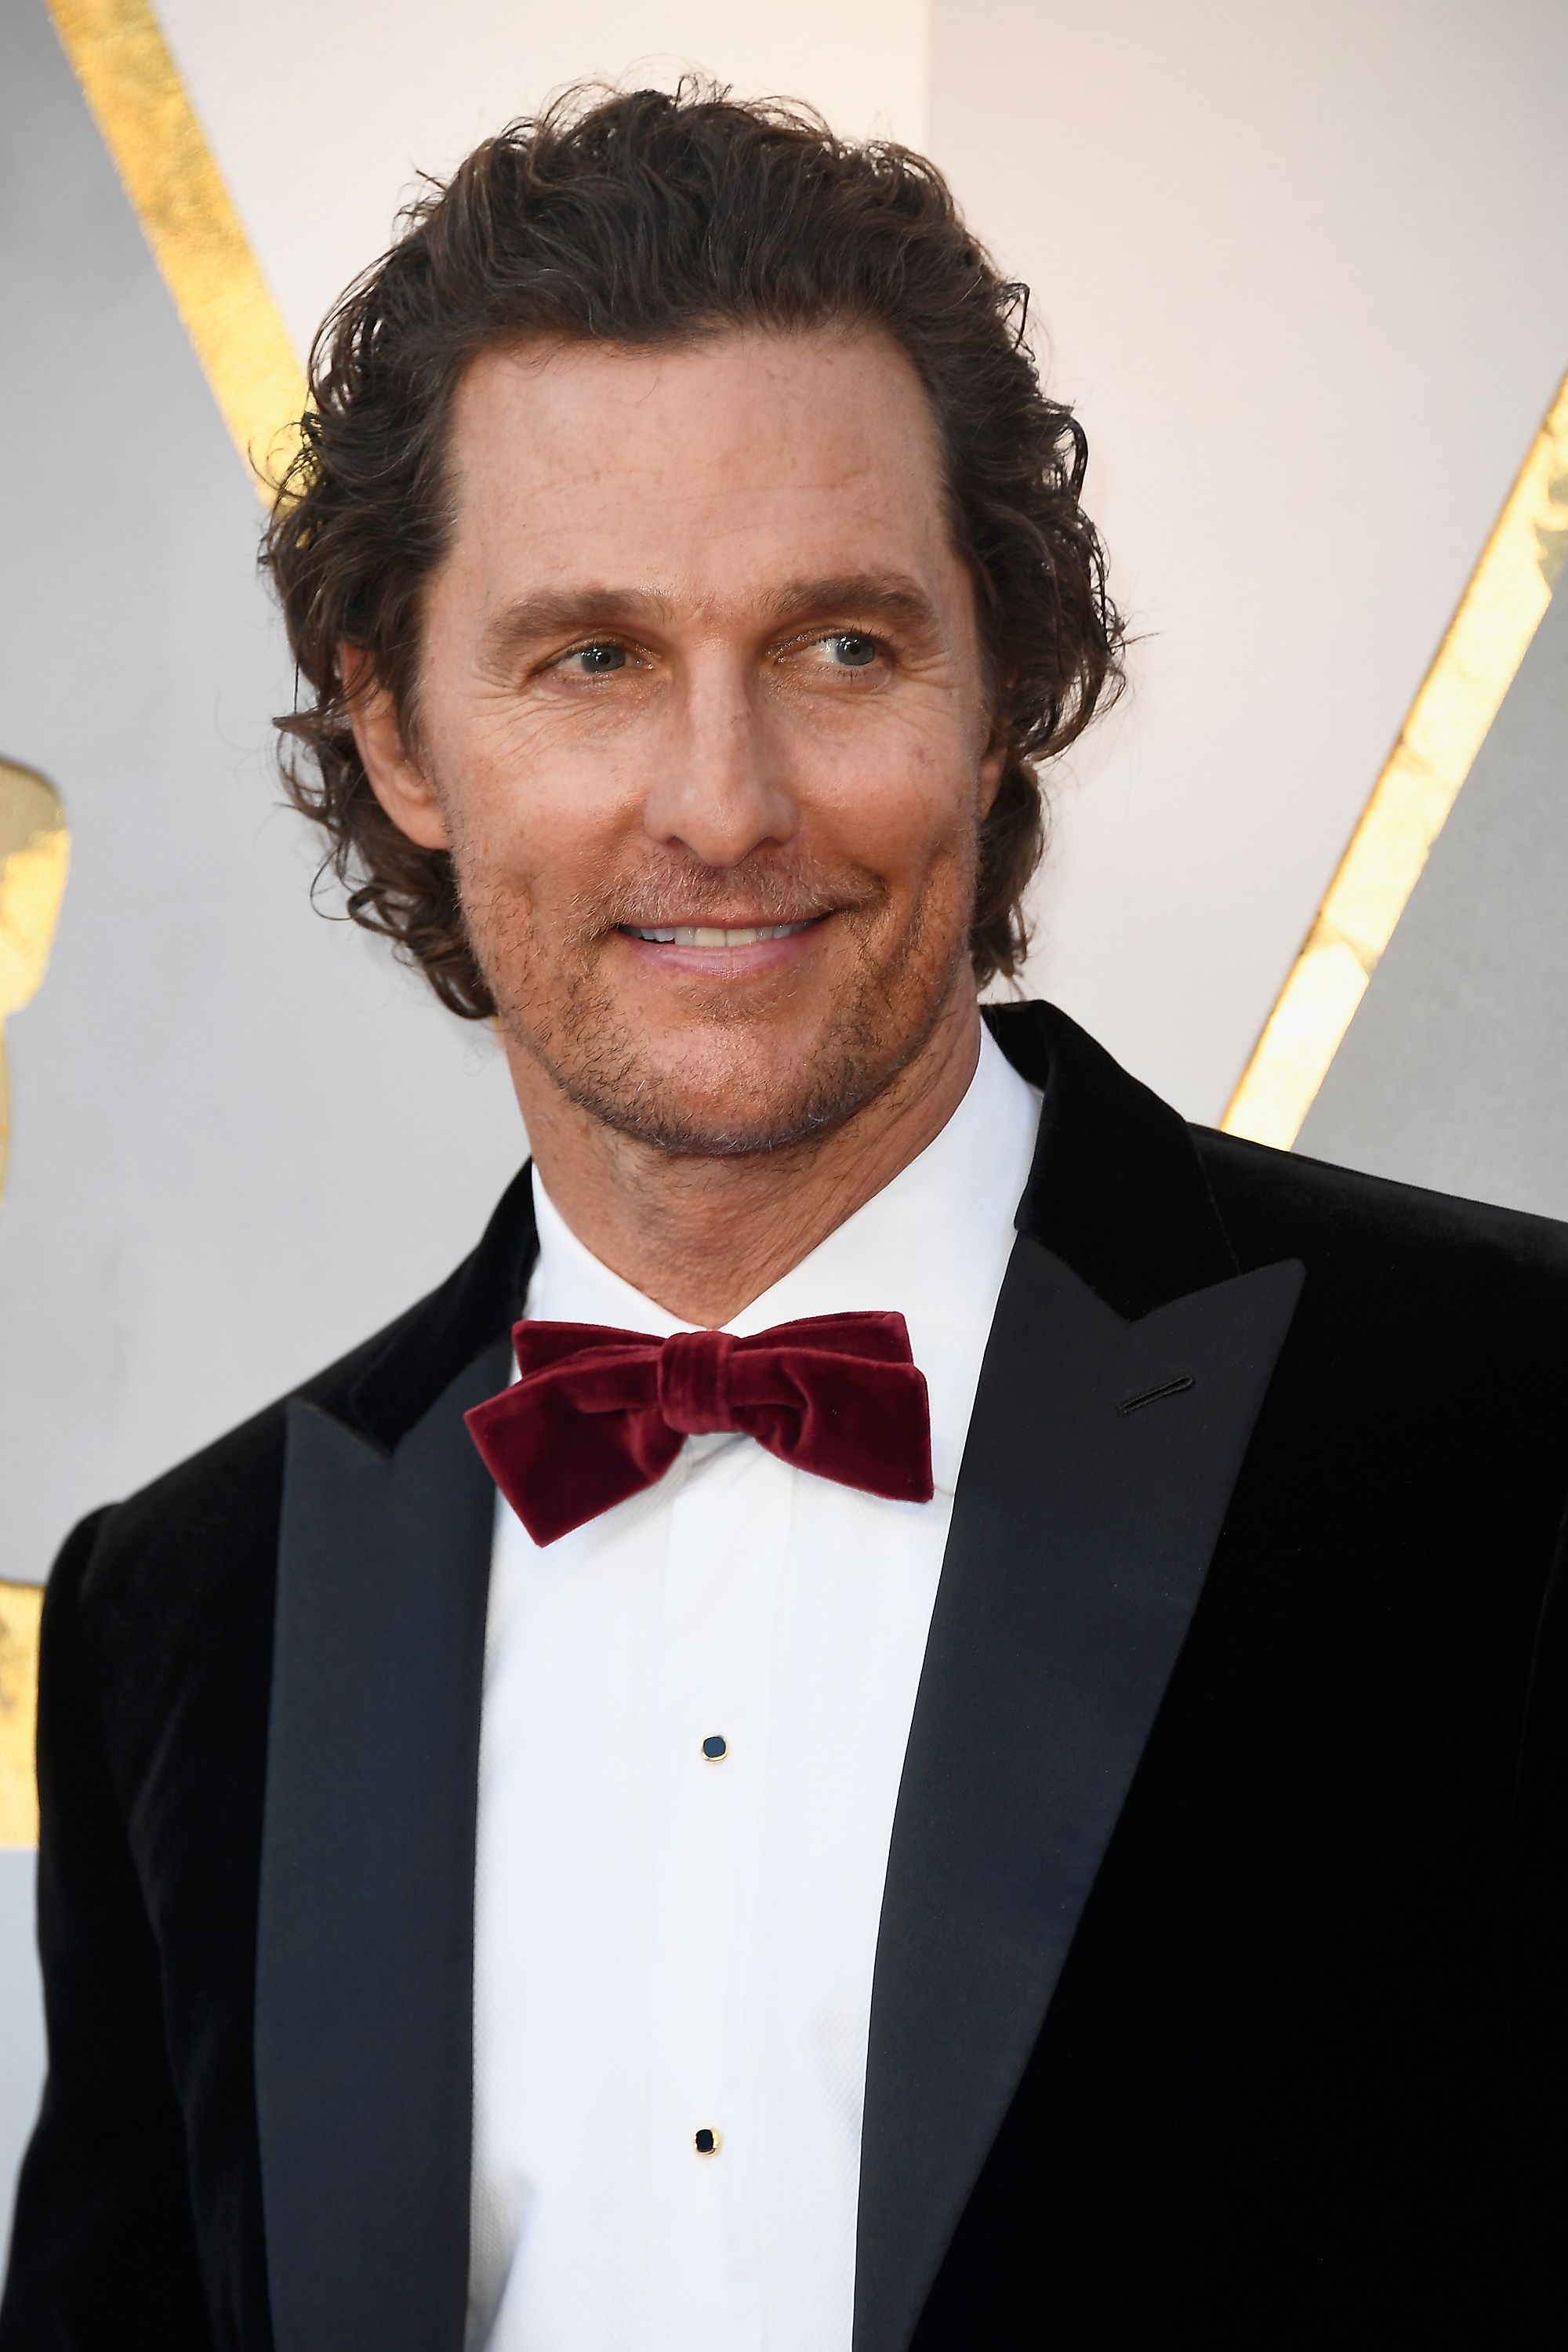 Matthew McConaughey attends the 90th Annual Academy Awards at Hollywood & Highland Center on March 4, 2018 in Hollywood, California. | Photo: Getty Images.